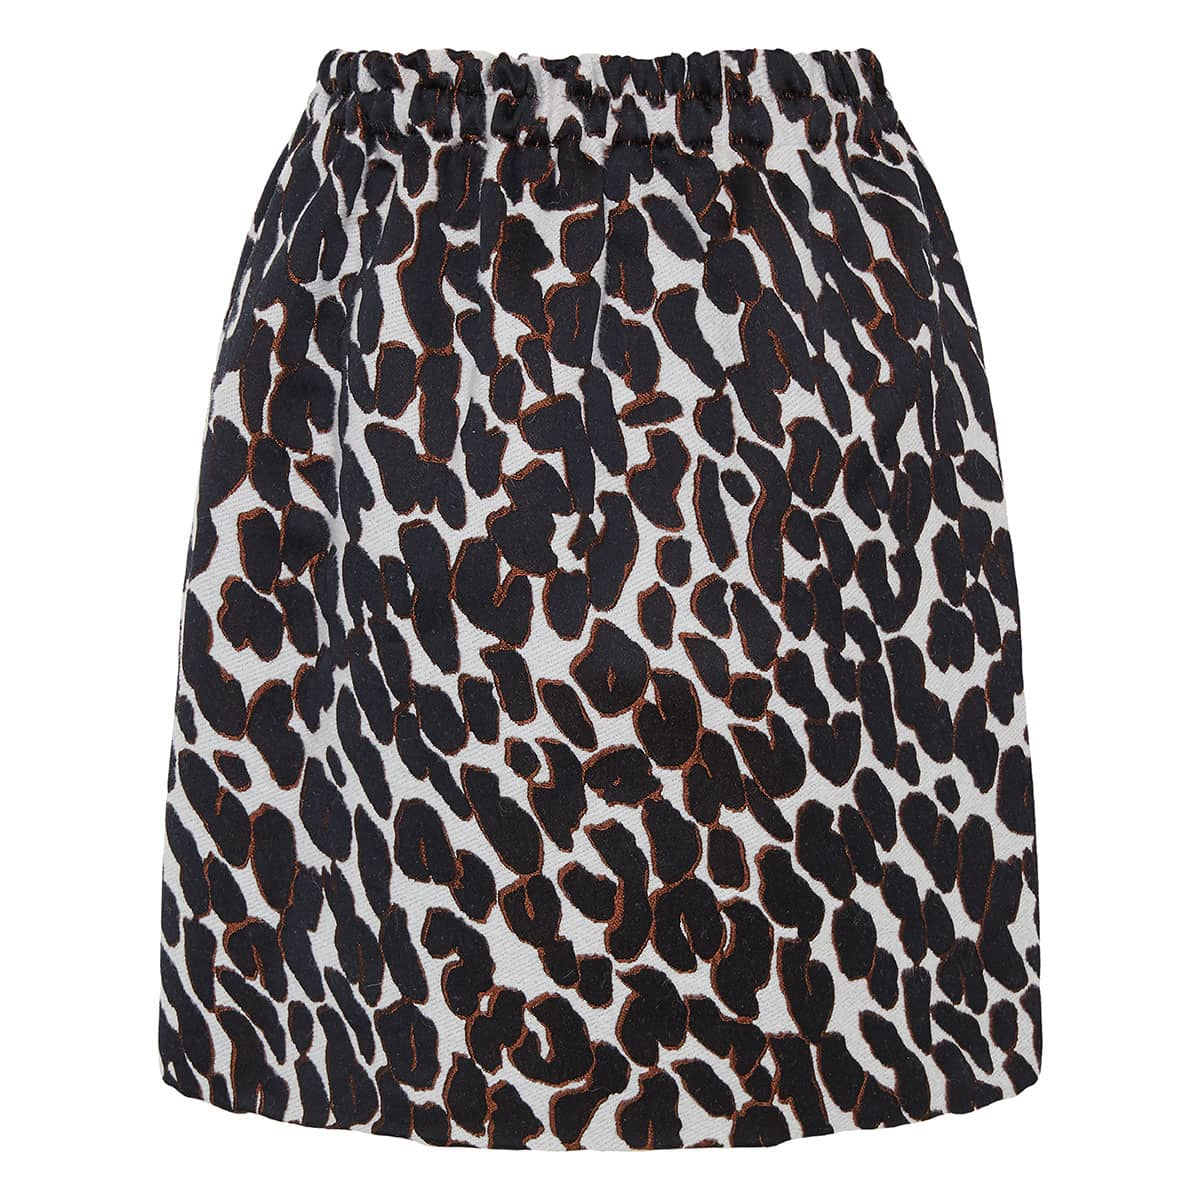 Leopard-jacquard balloon mini skirt